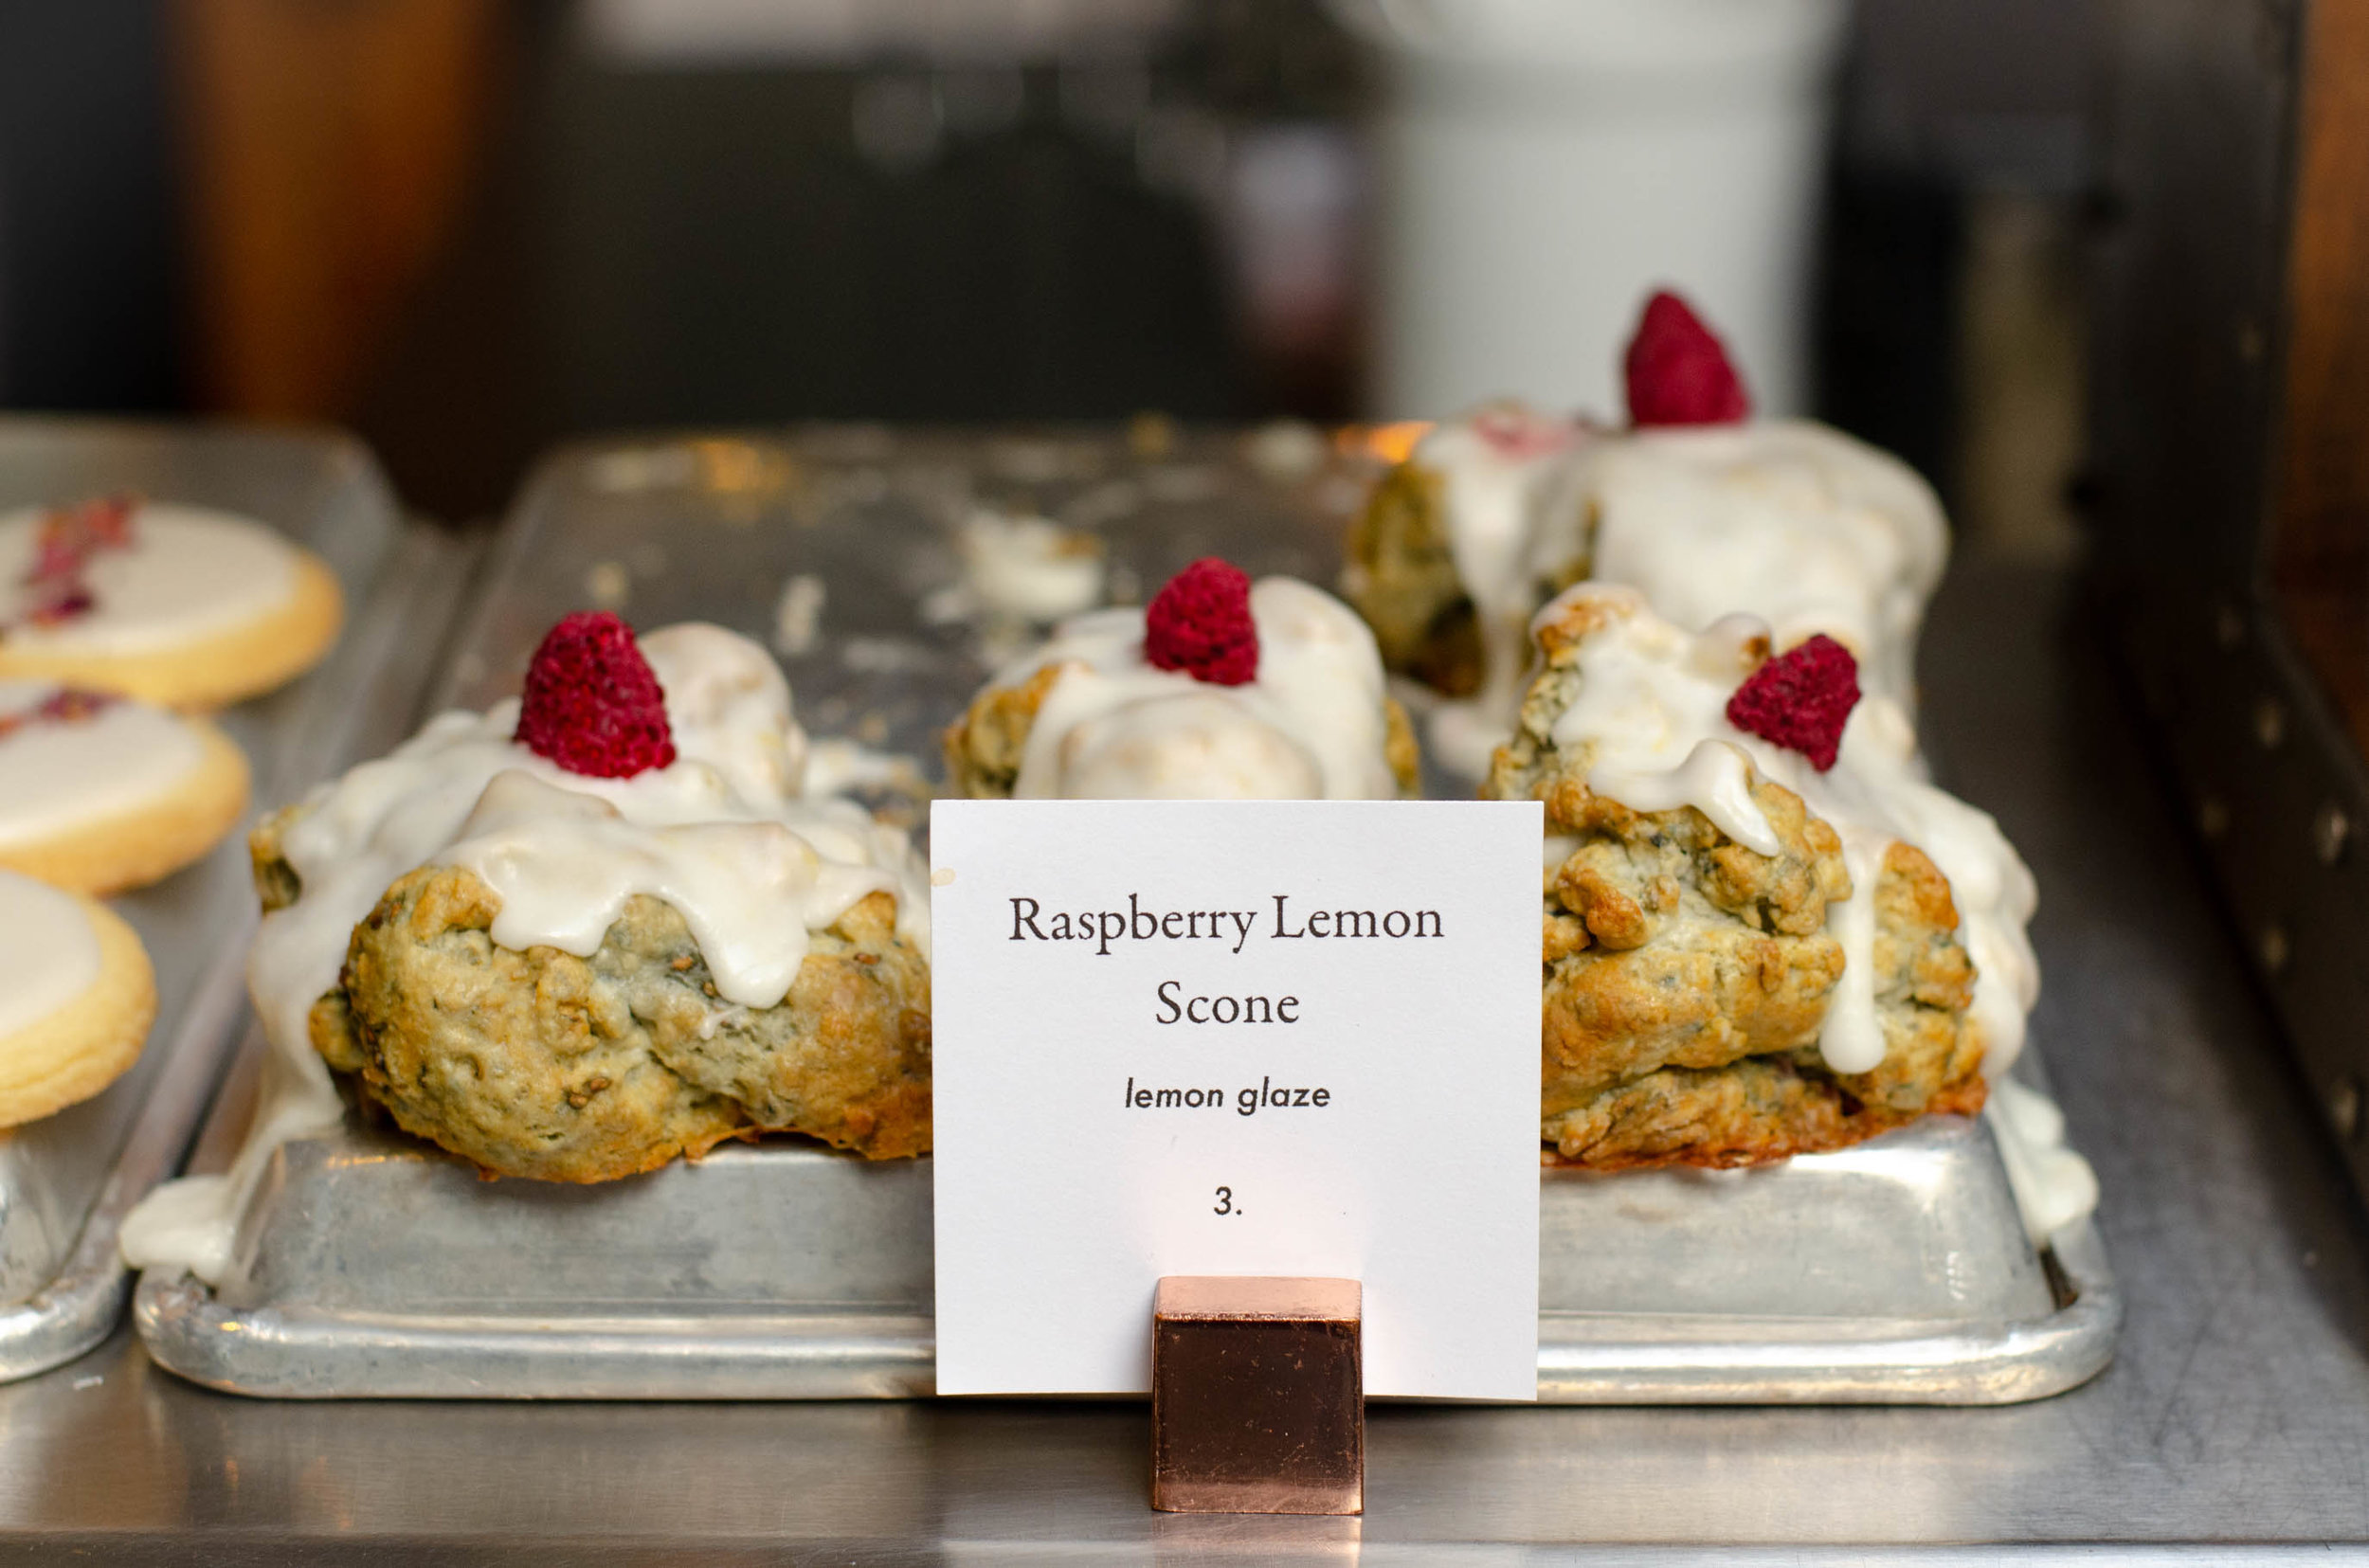 Make sure and stop in Salt Lake City for yummy cafe treats